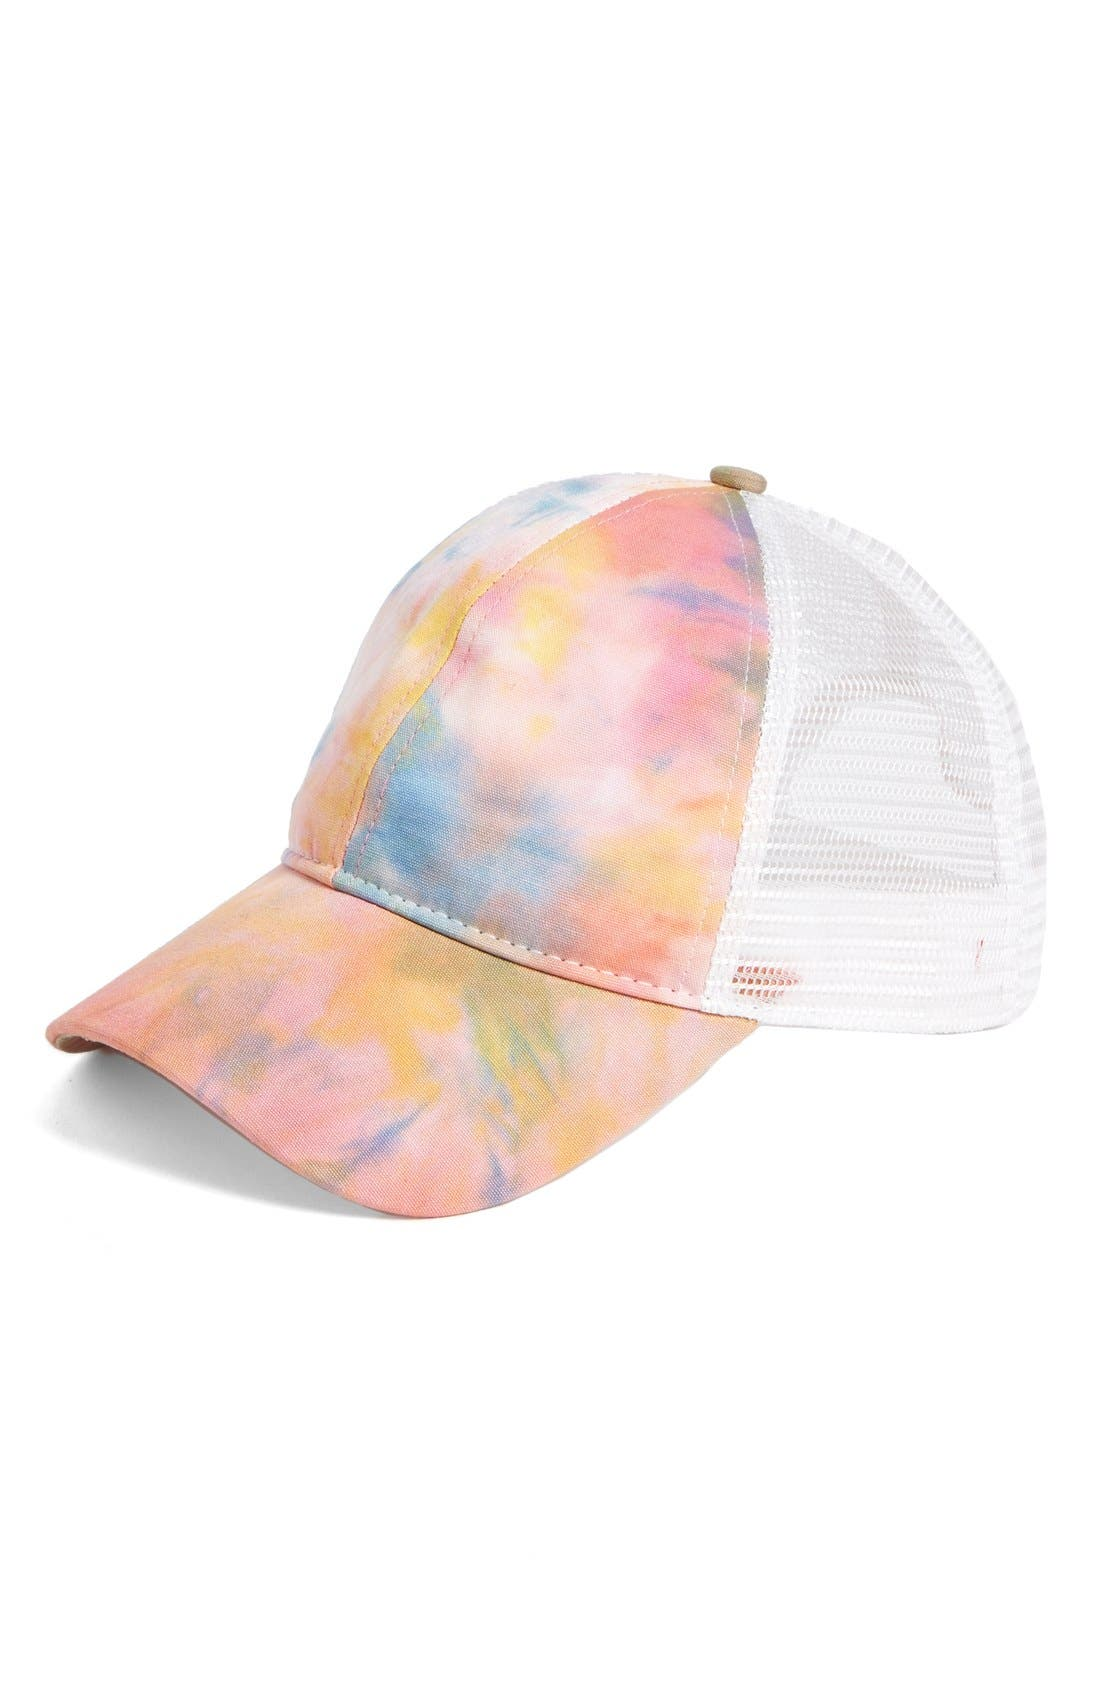 Alternate Image 1 Selected - San Diego Hat Tie Dye Trucker Hat